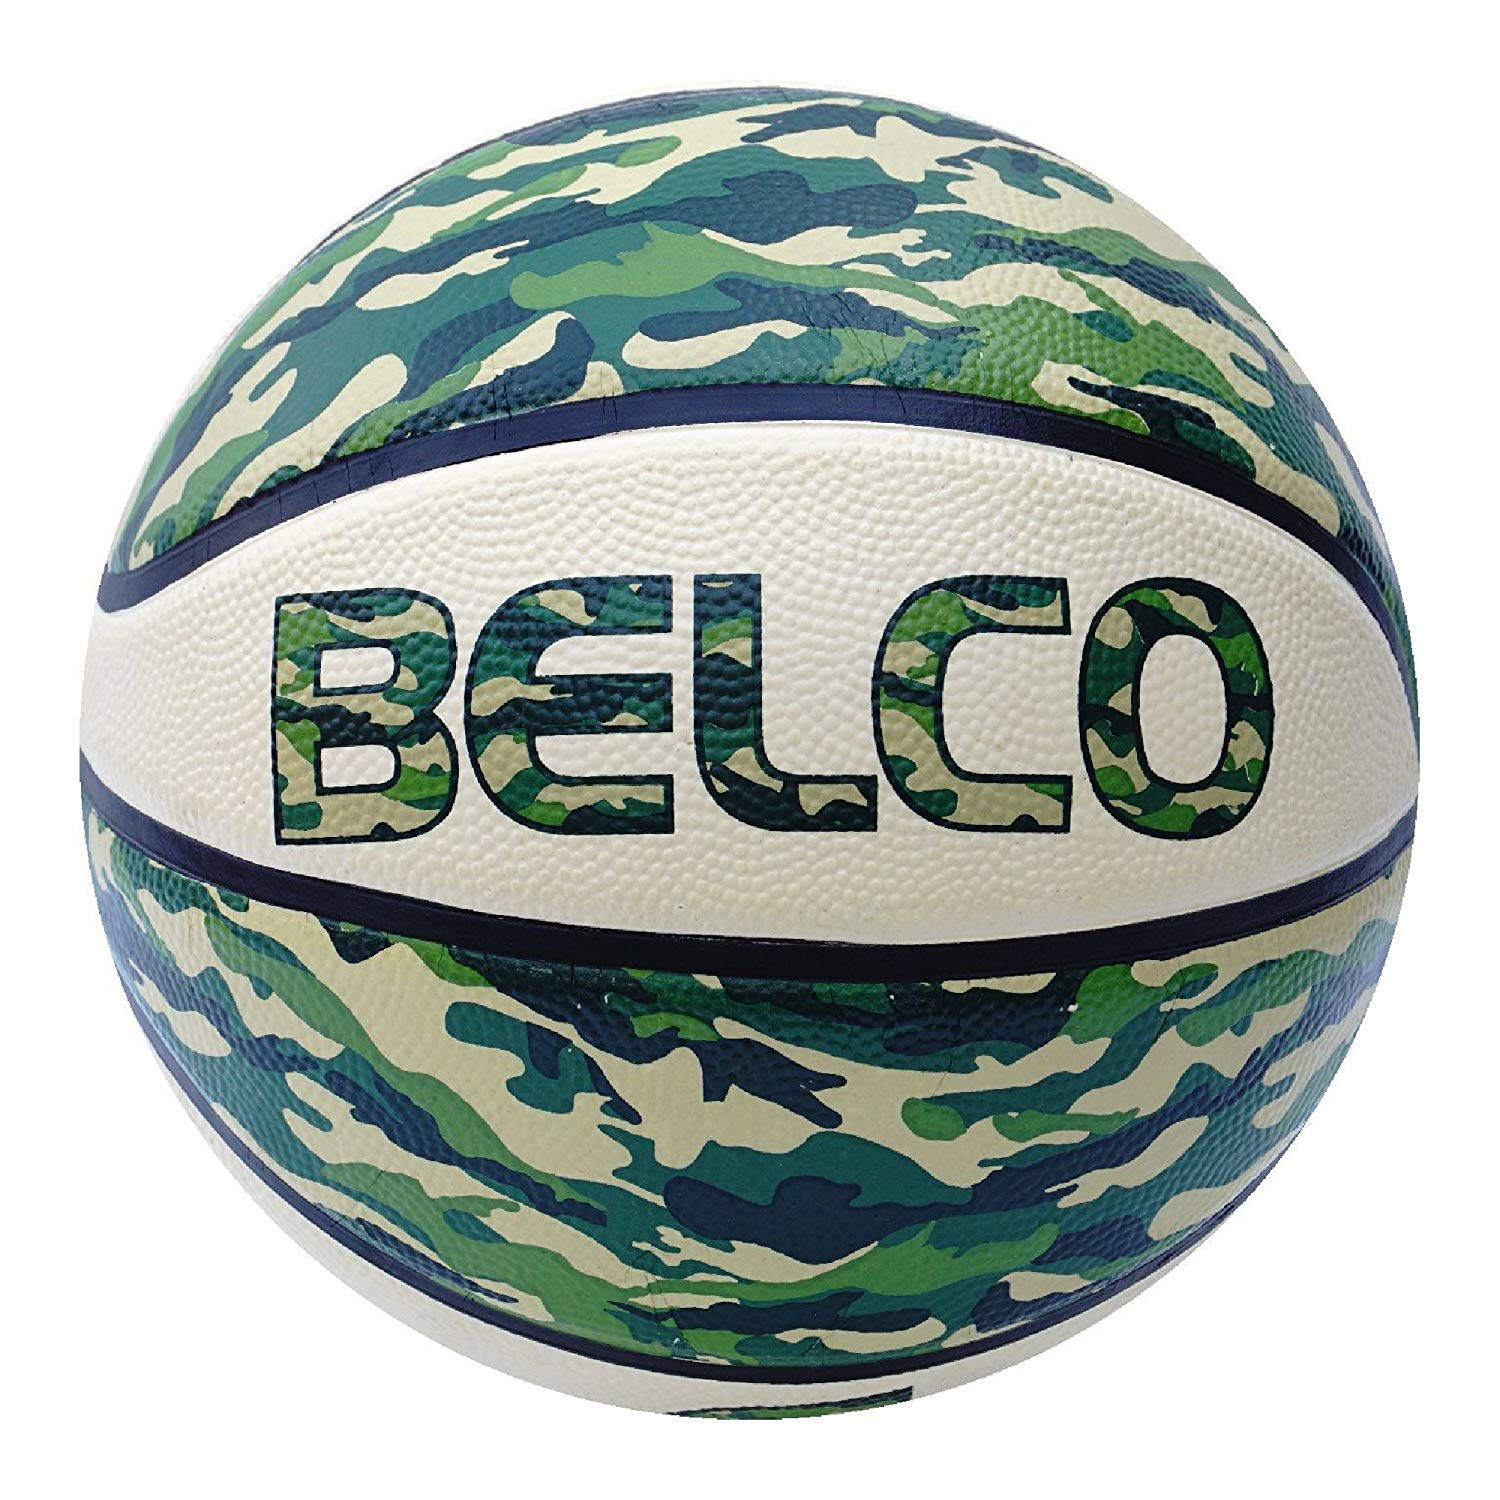 Belco Street Basketball - Size 7